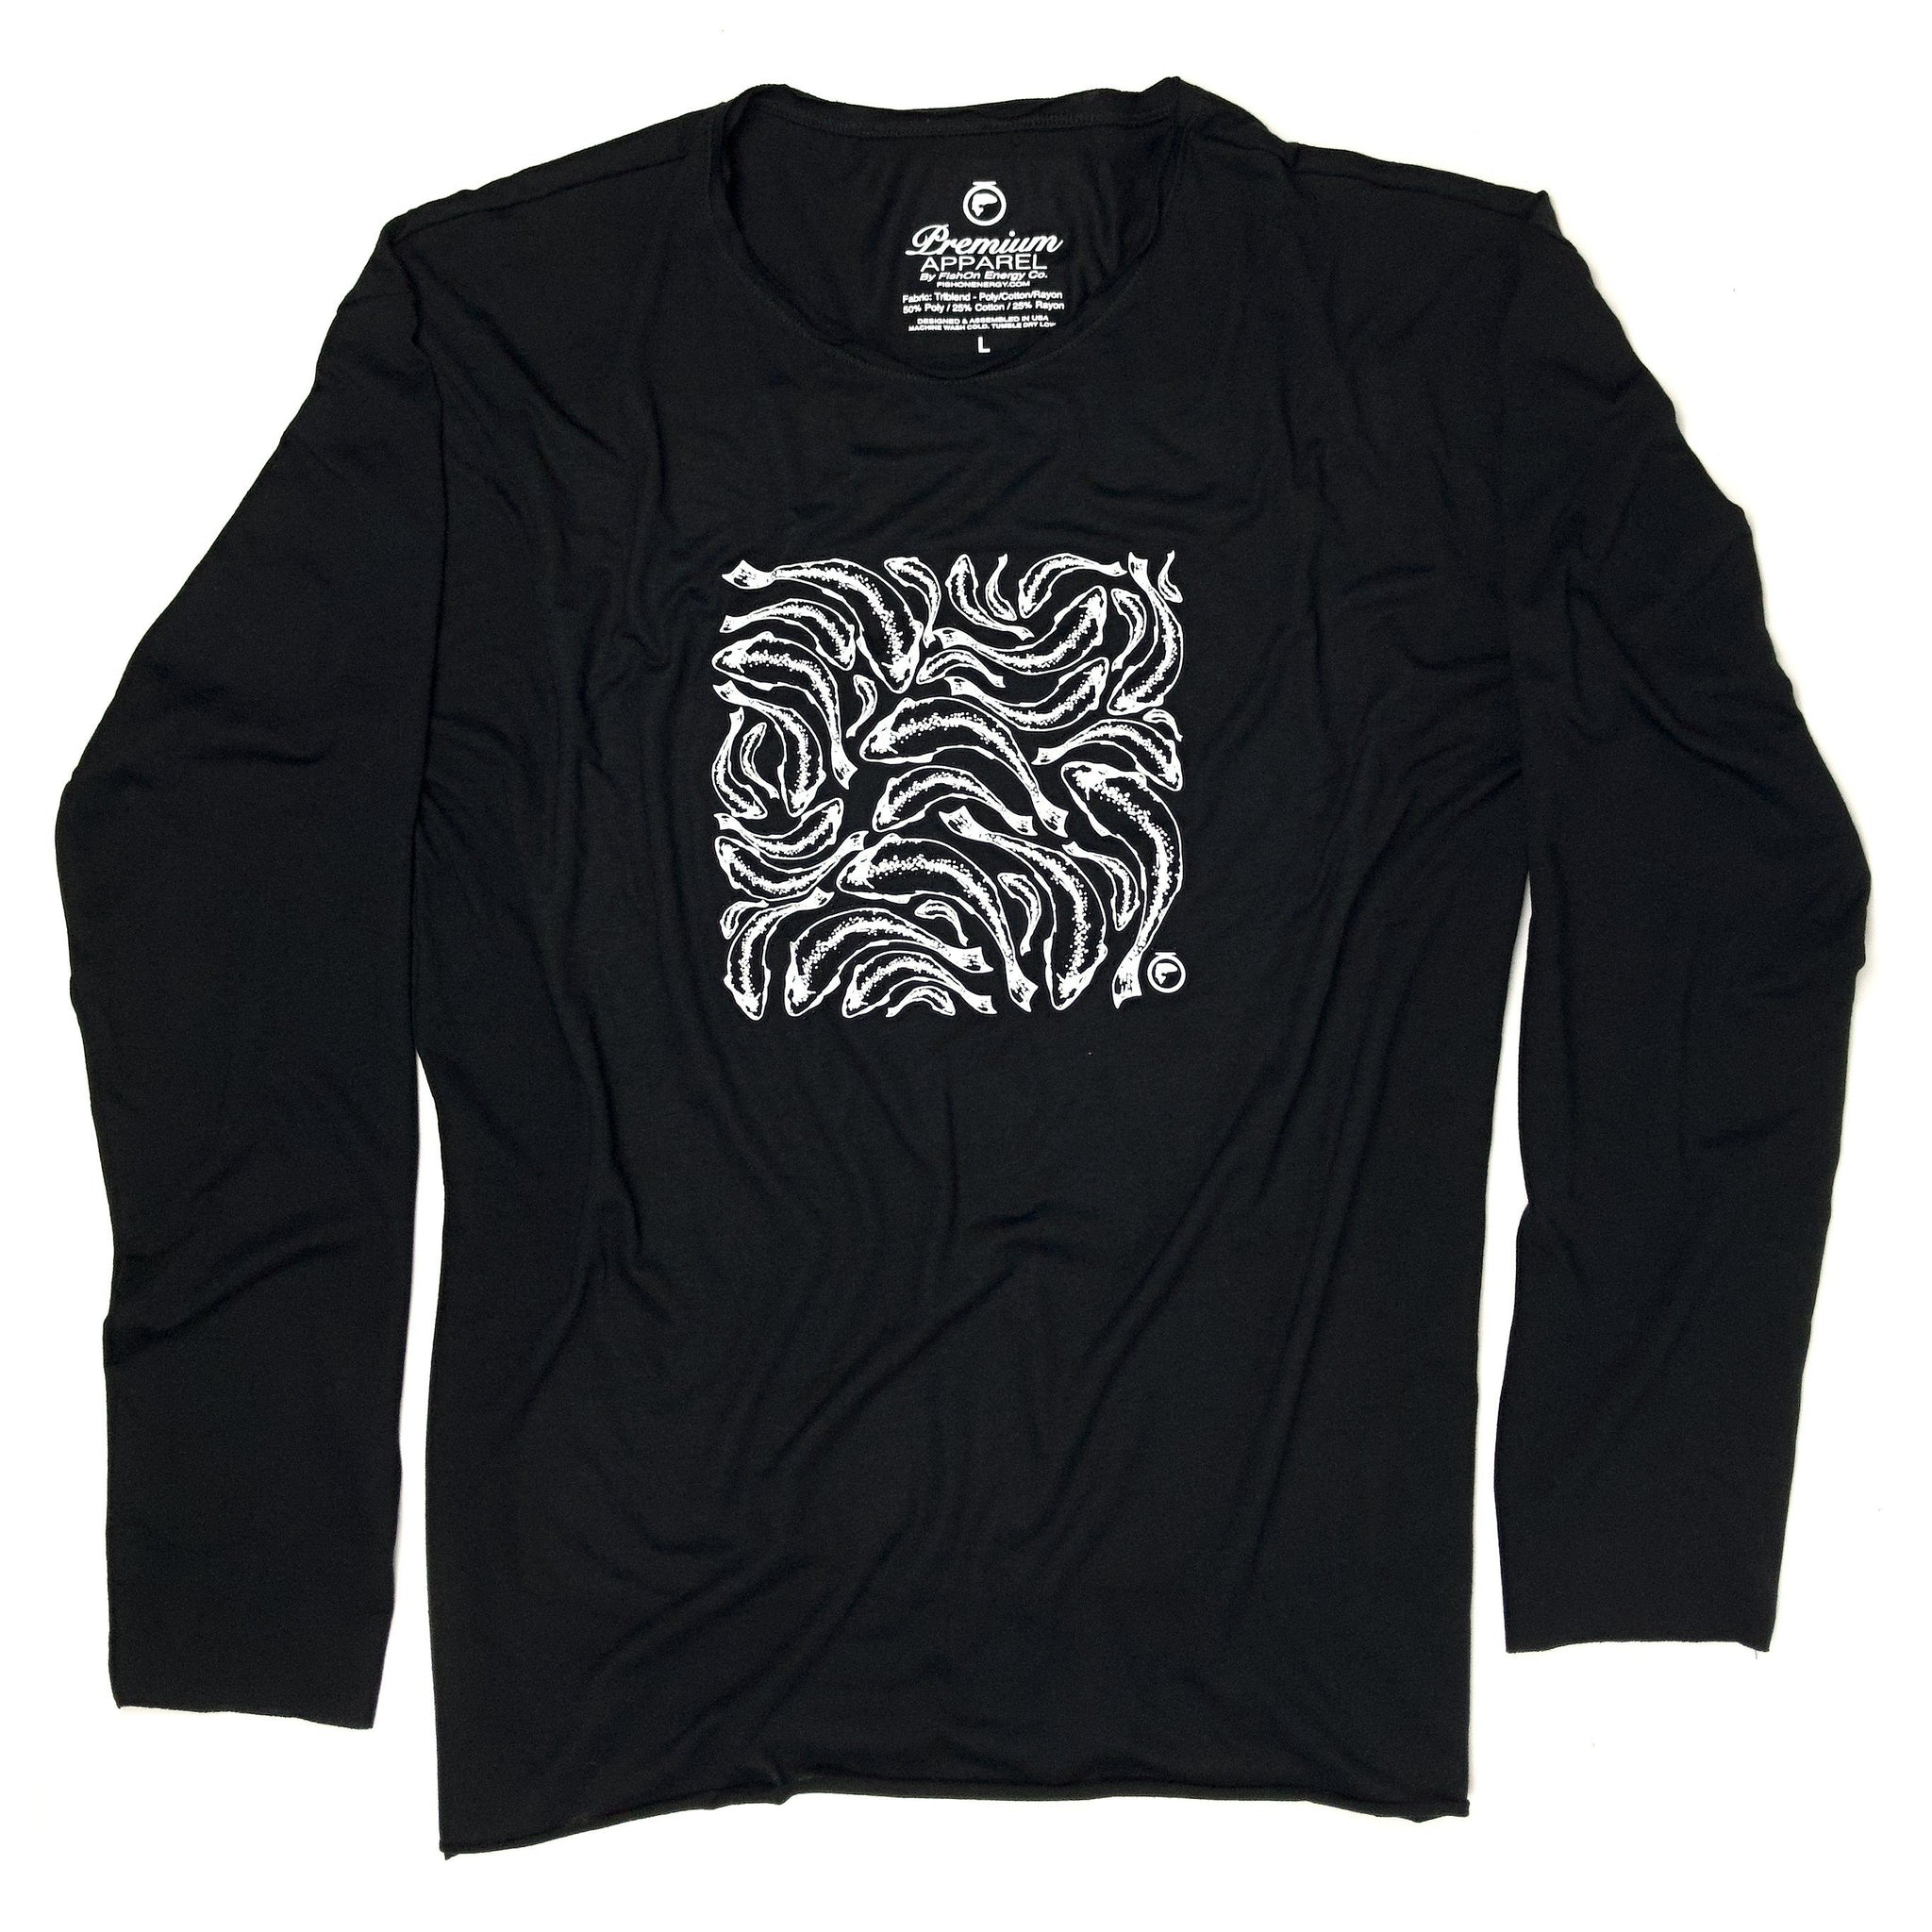 Trout Print LS Rough Neck Tee (Unisex) - Black